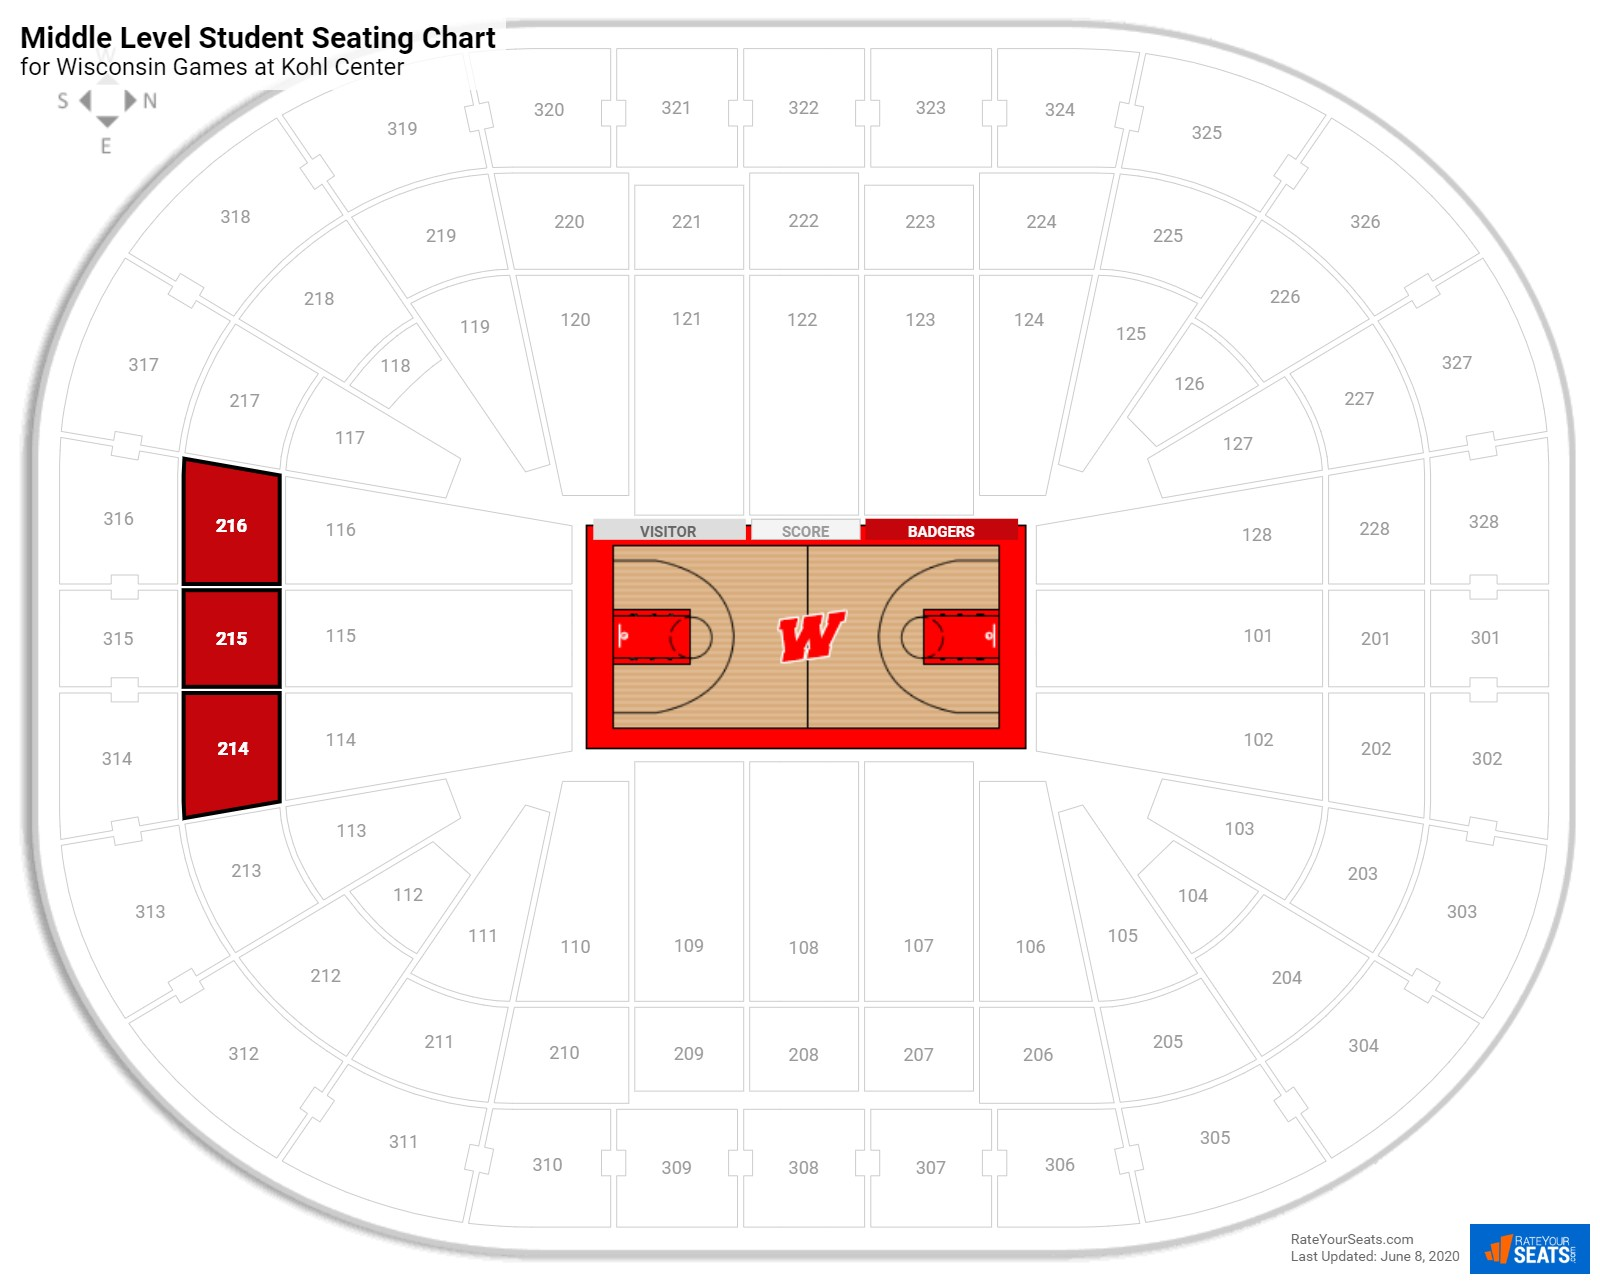 Kohl Center Middle Level Student seating chart